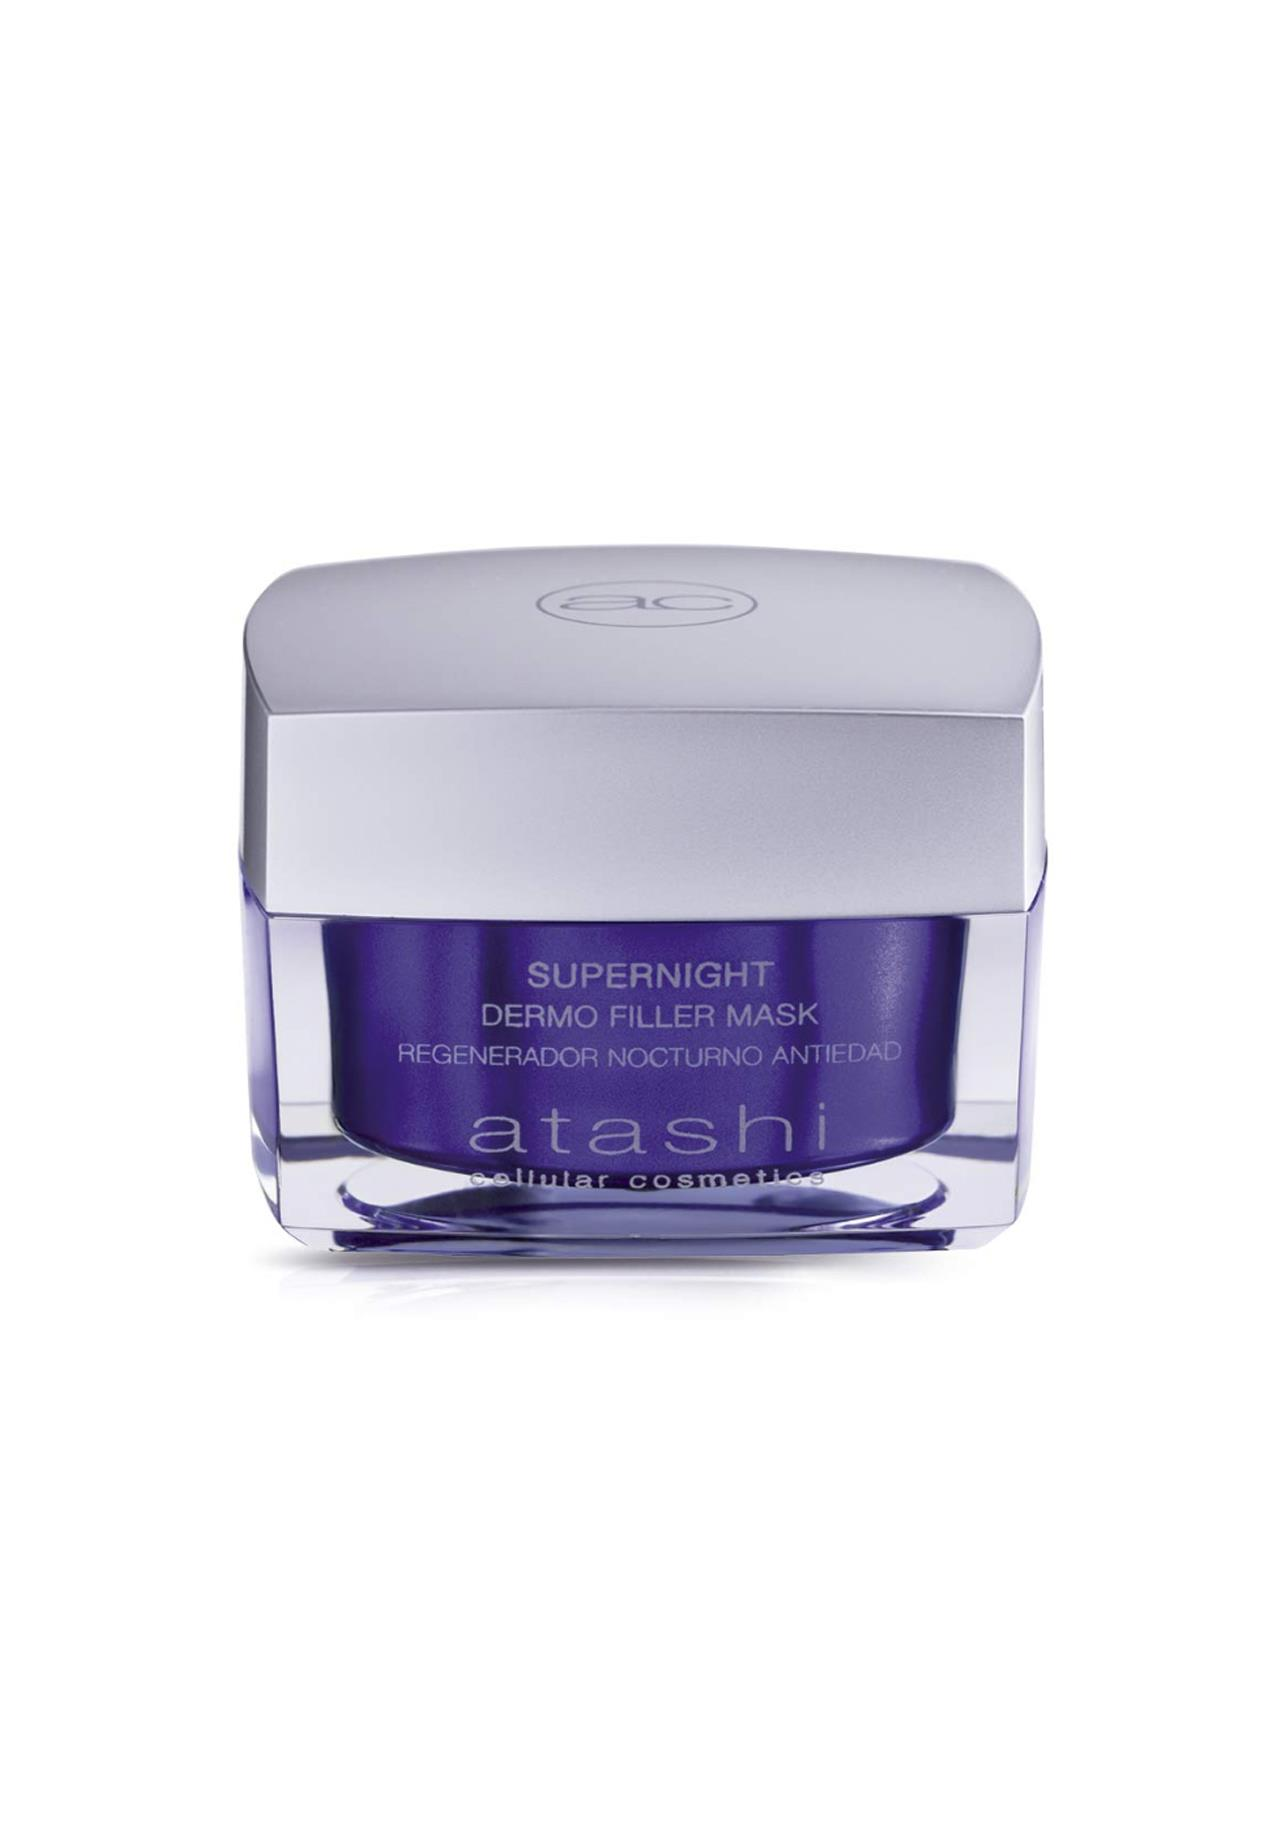 SuperNight Dermo Filler Mask, 42,50€ LUZ AZUL